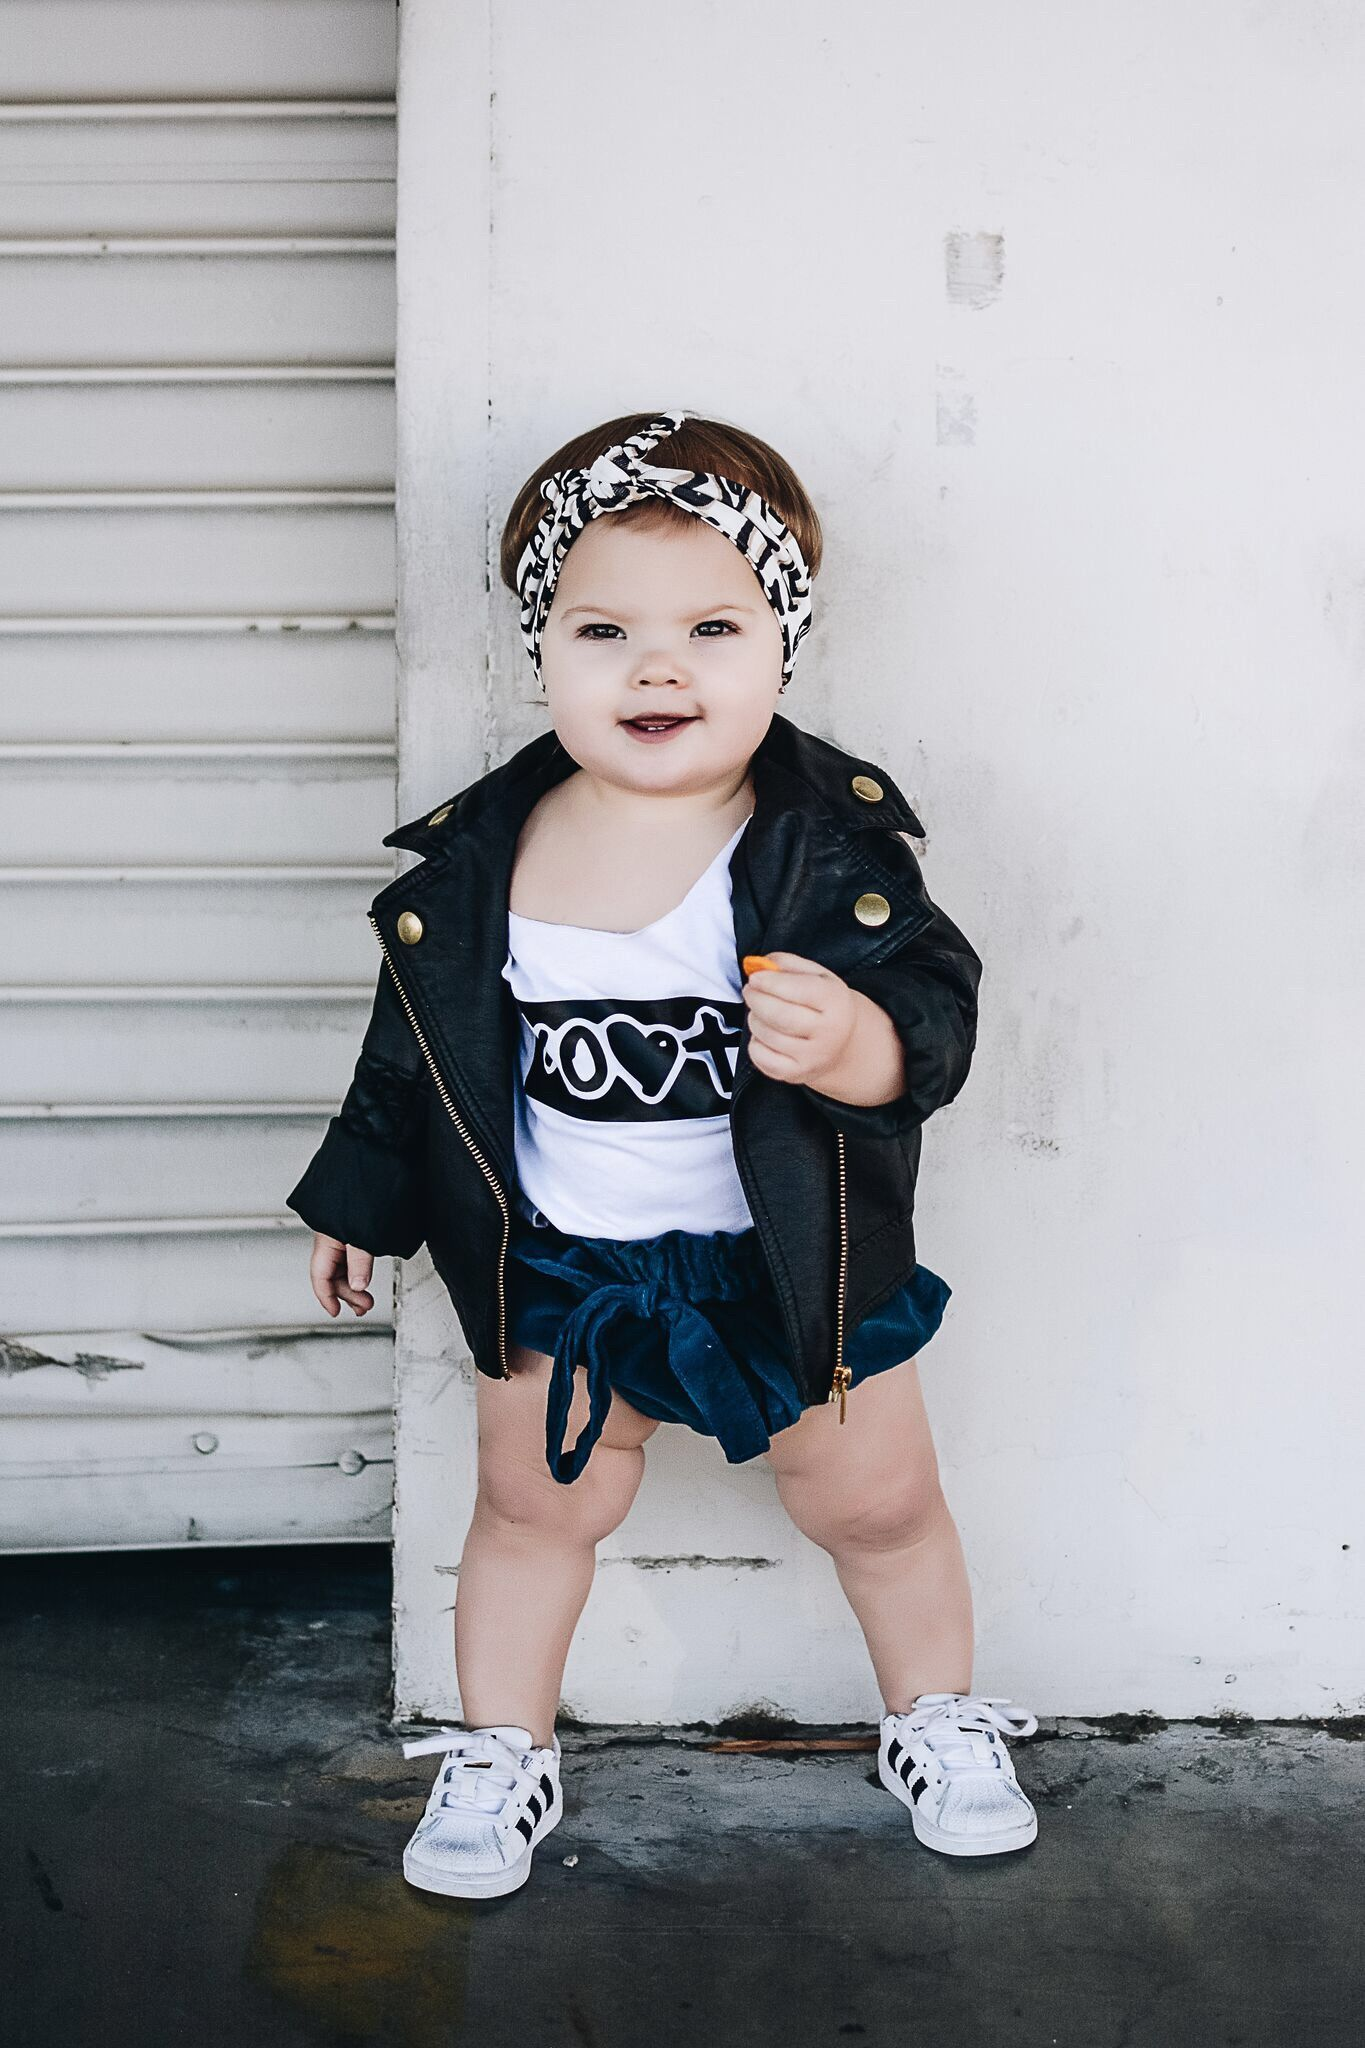 Kids Unisex Leather Jacket Toddler Fashion Baby Outerwear Kids Dress